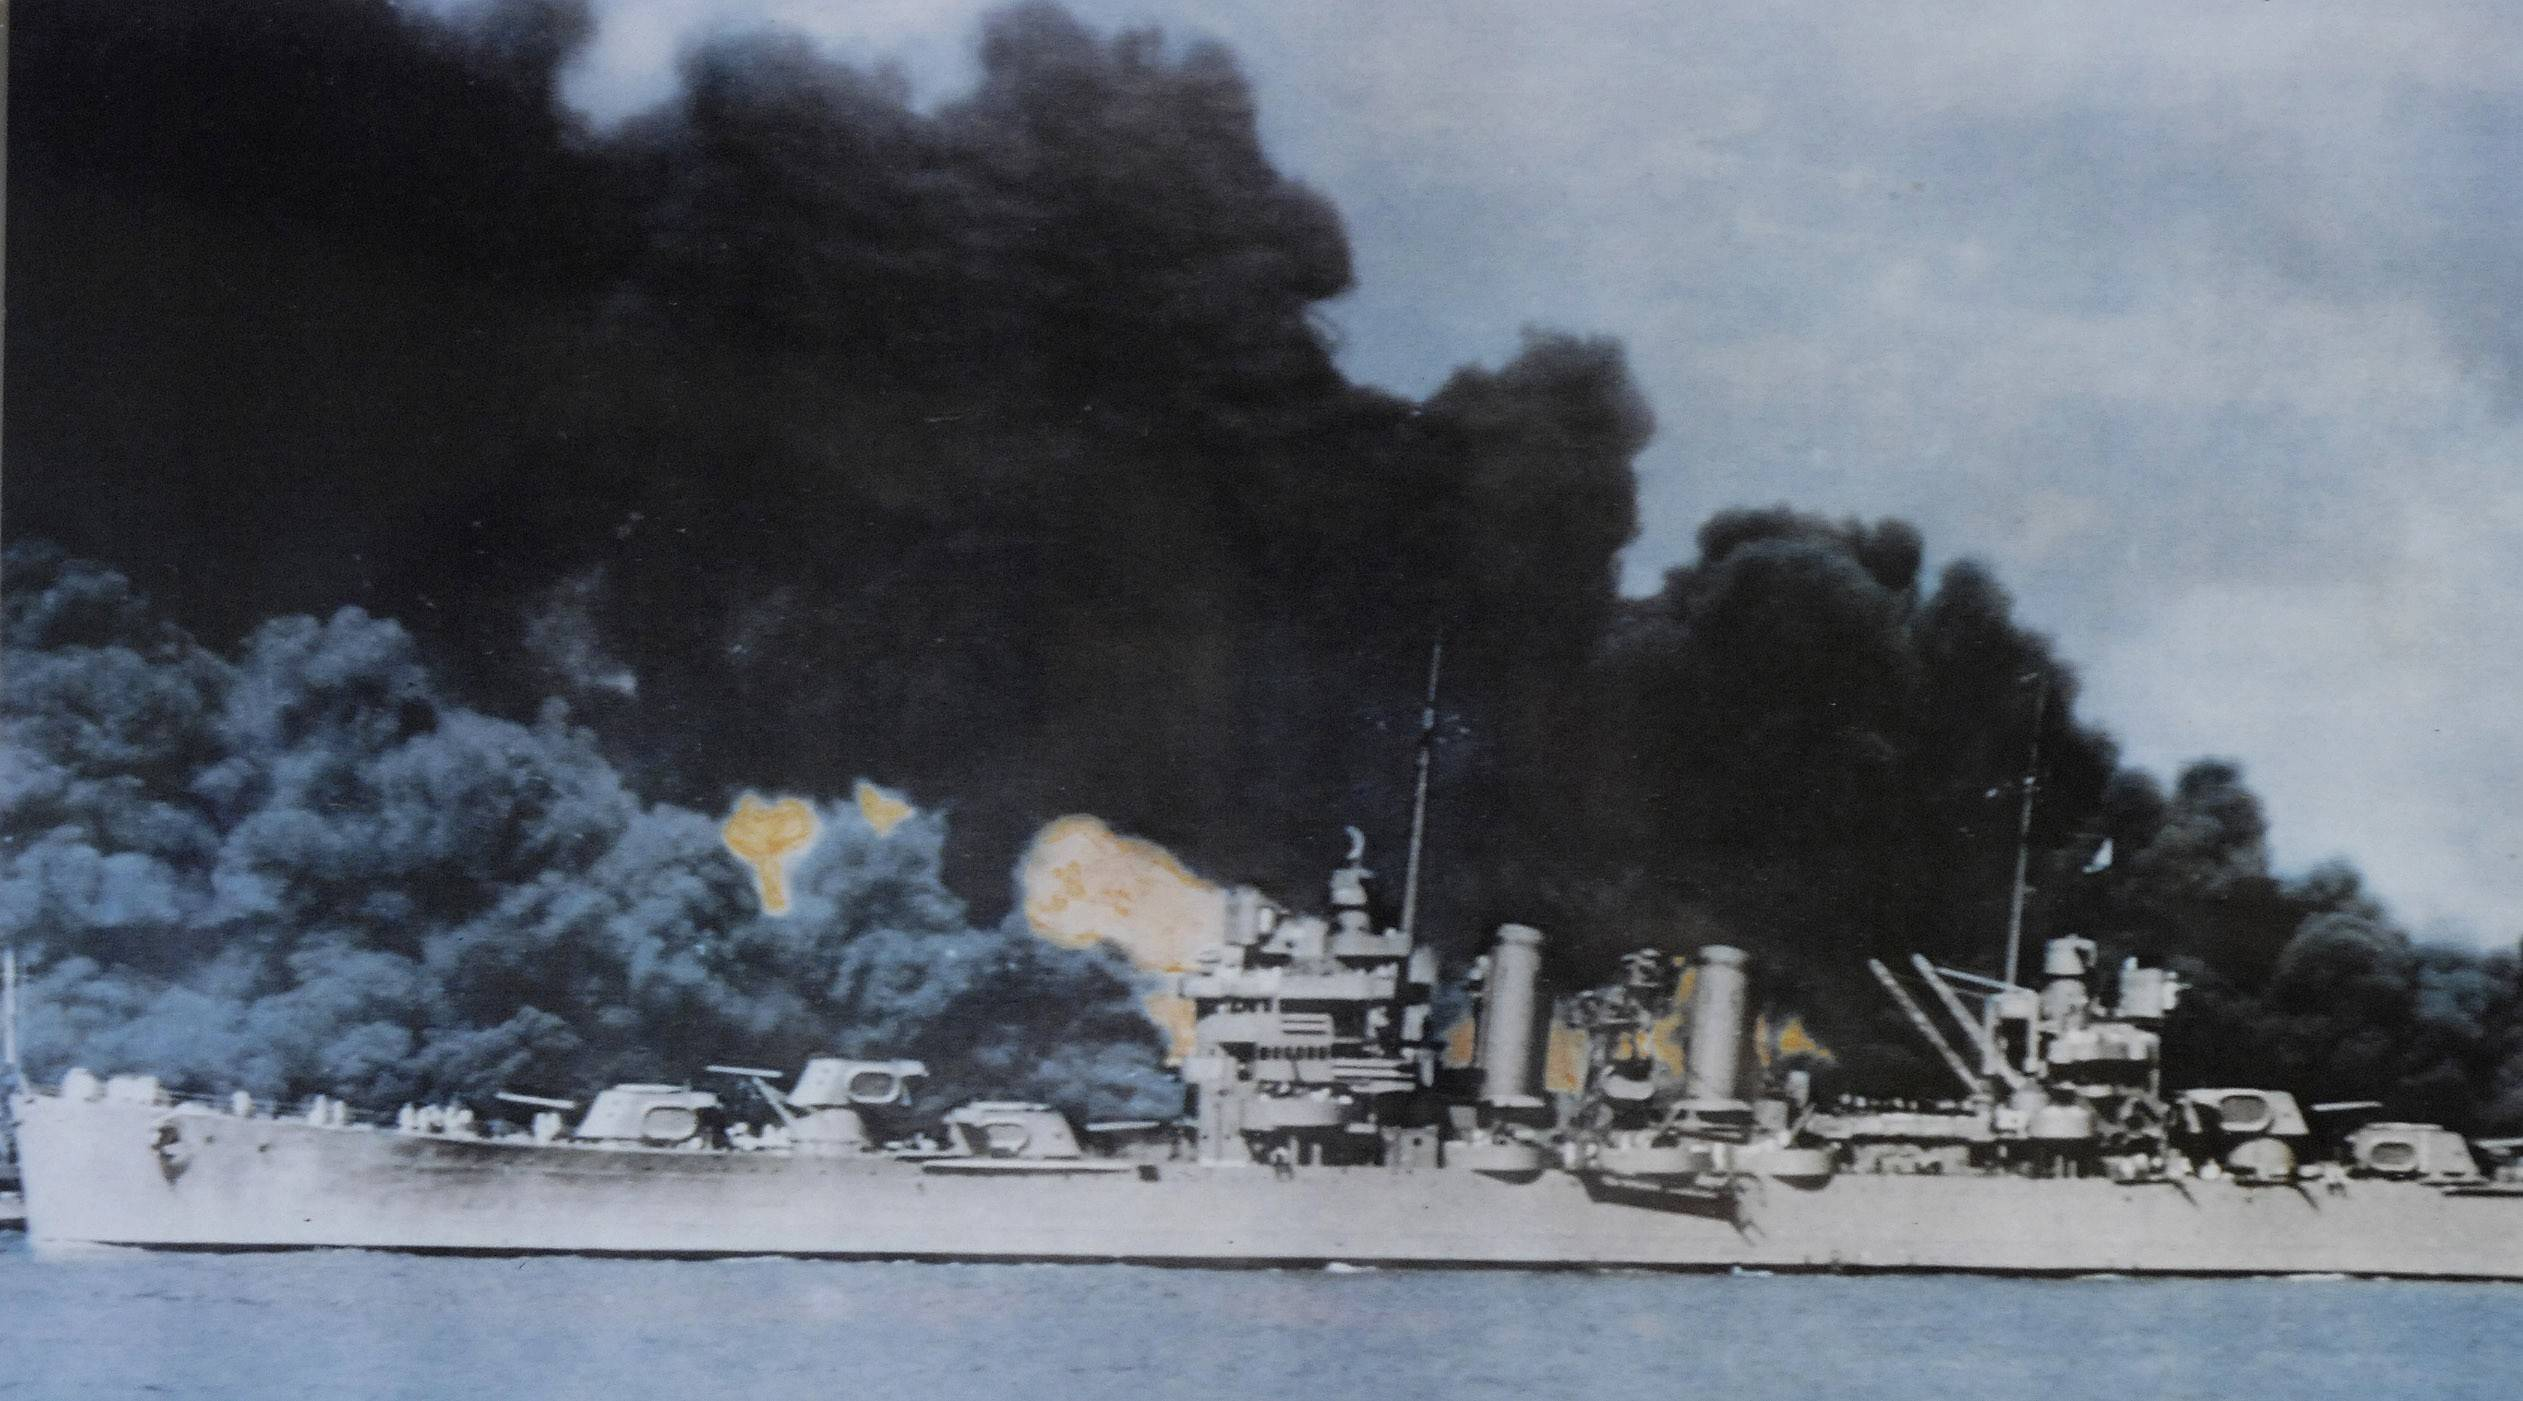 U.S.S. Phoenix passes the burning U.S.S. Arizona in Pearl Harbor after the surprise attack by the Japanese December 7, 1941.